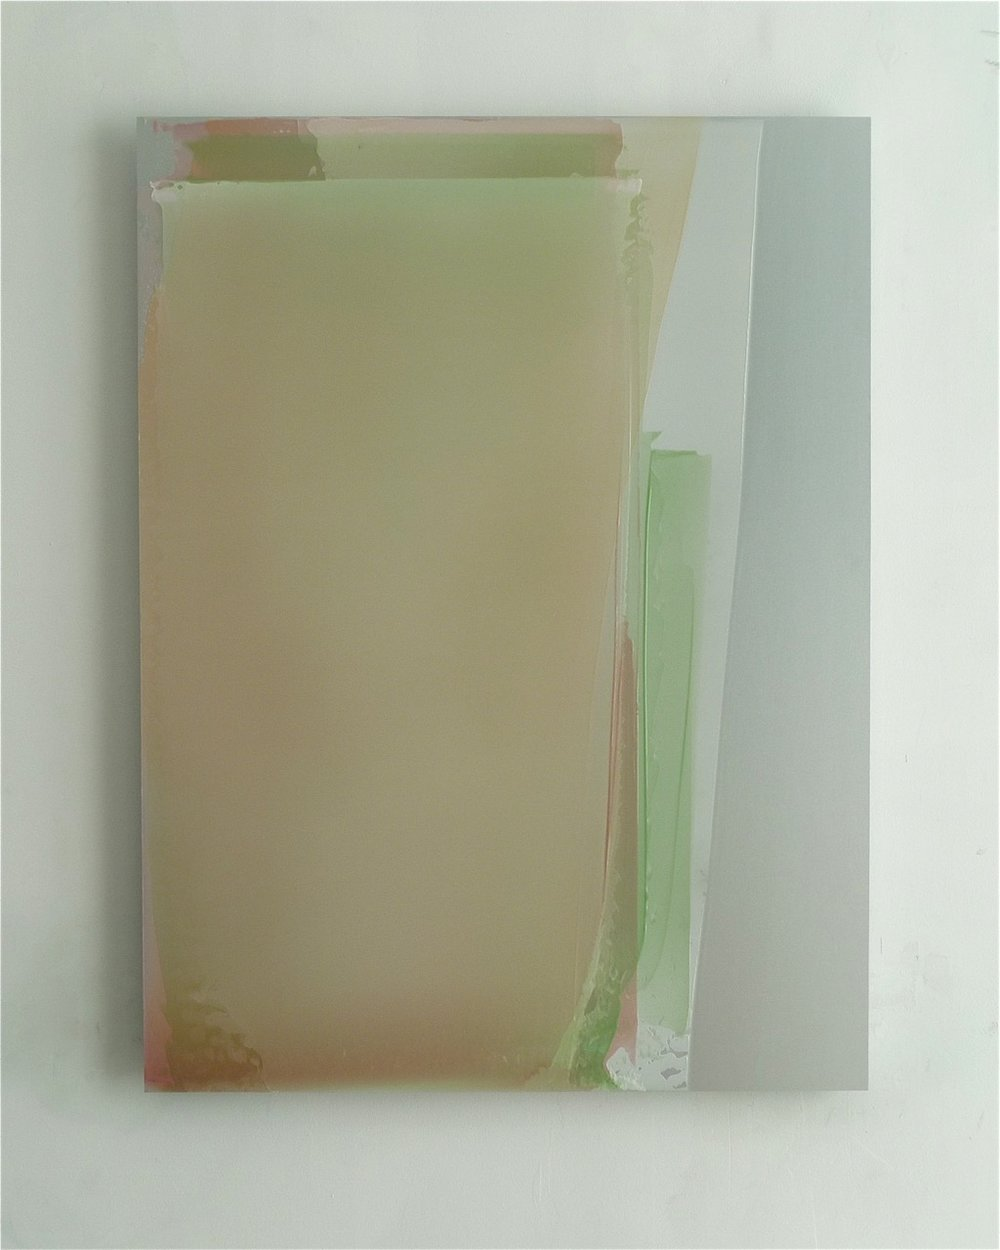 Untitled Composition, 2012, 90x70cm.jpg